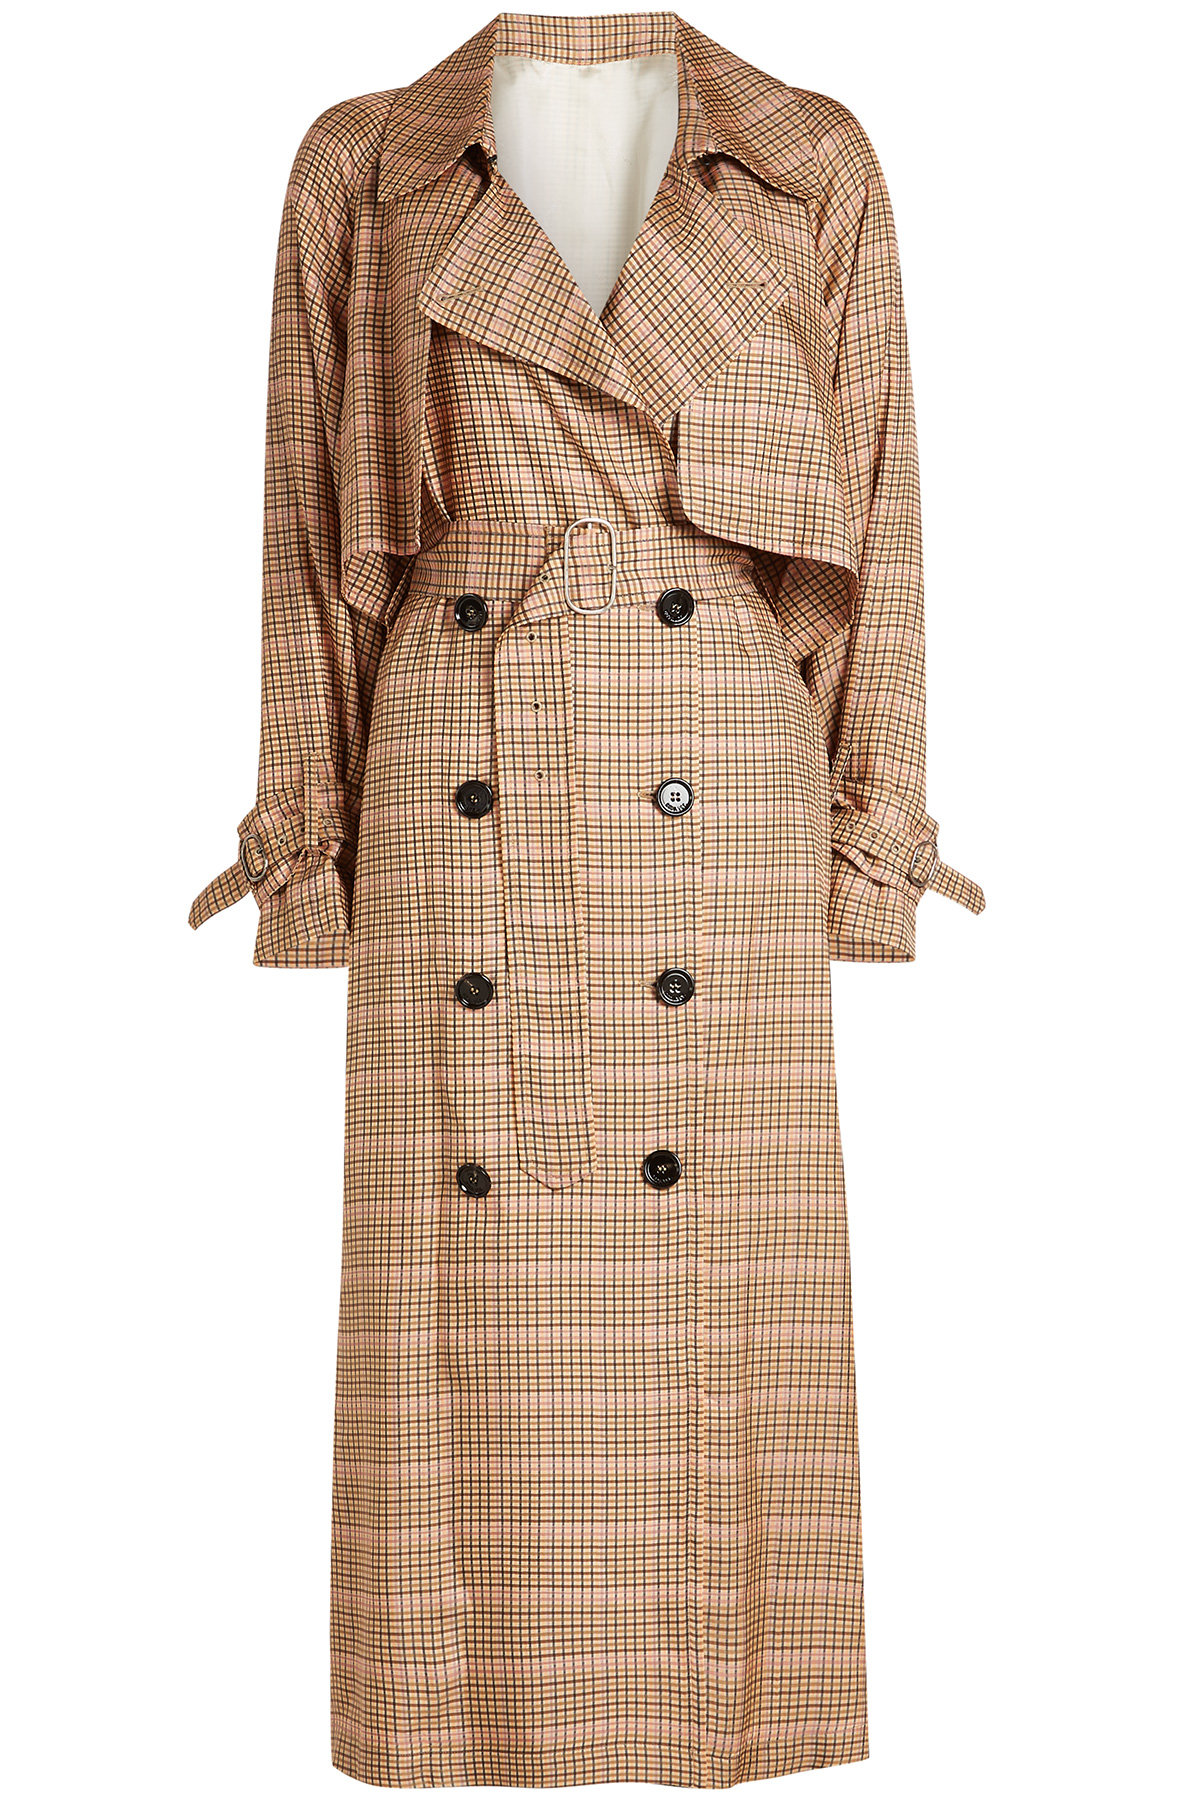 Vela Checked Trench Coat | GOLDEN GOOSE DELUXE BRAND